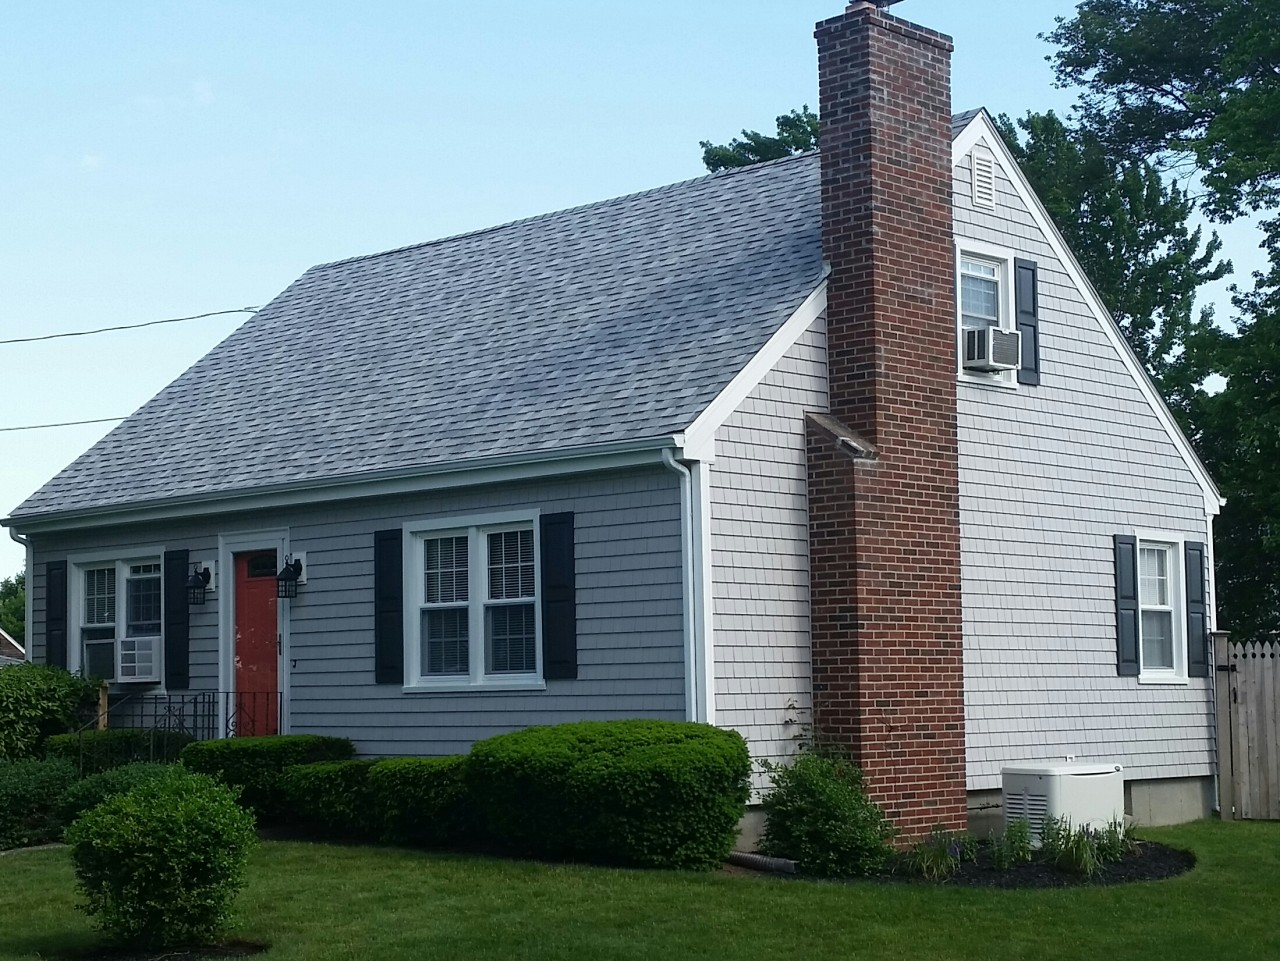 Cape Cod Style Home Gets New Siding in Somerset, MA ... on Siding Ideas  id=19763